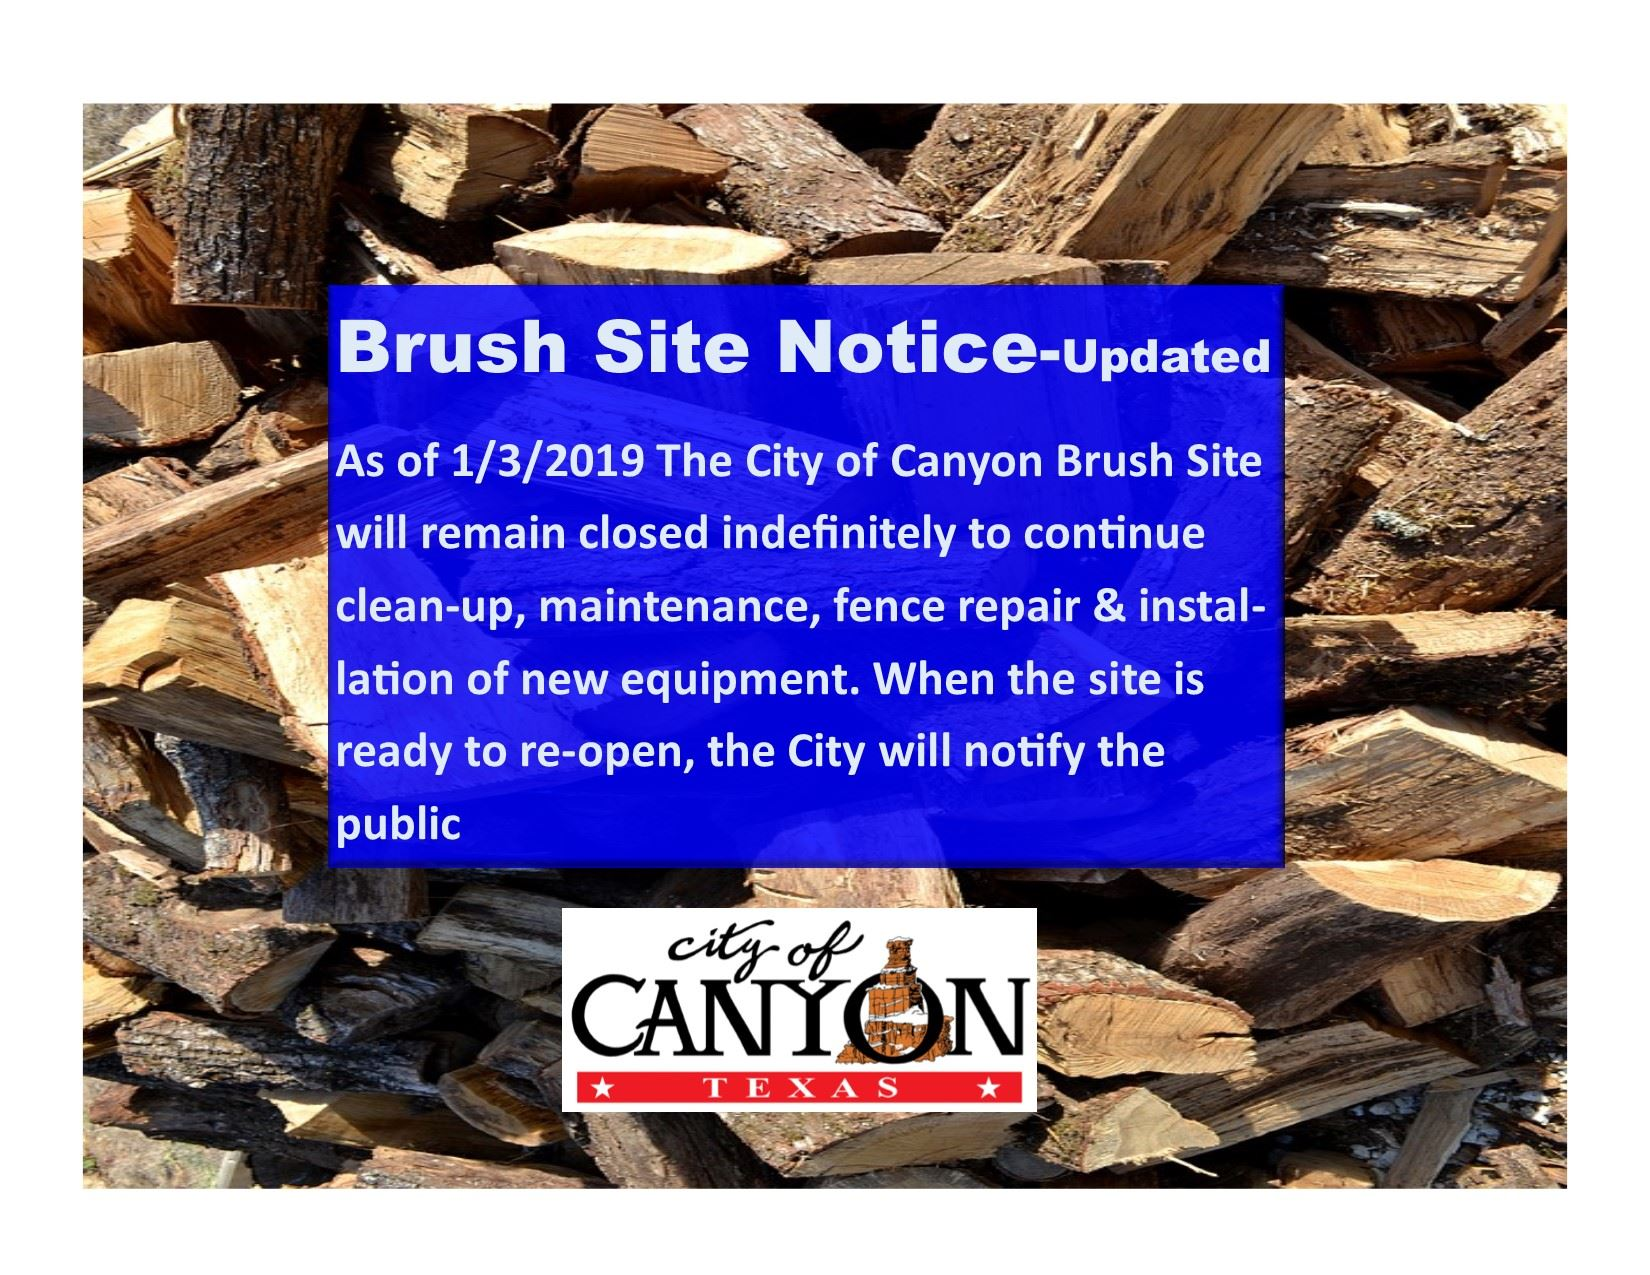 Brush Site Notice-Updated